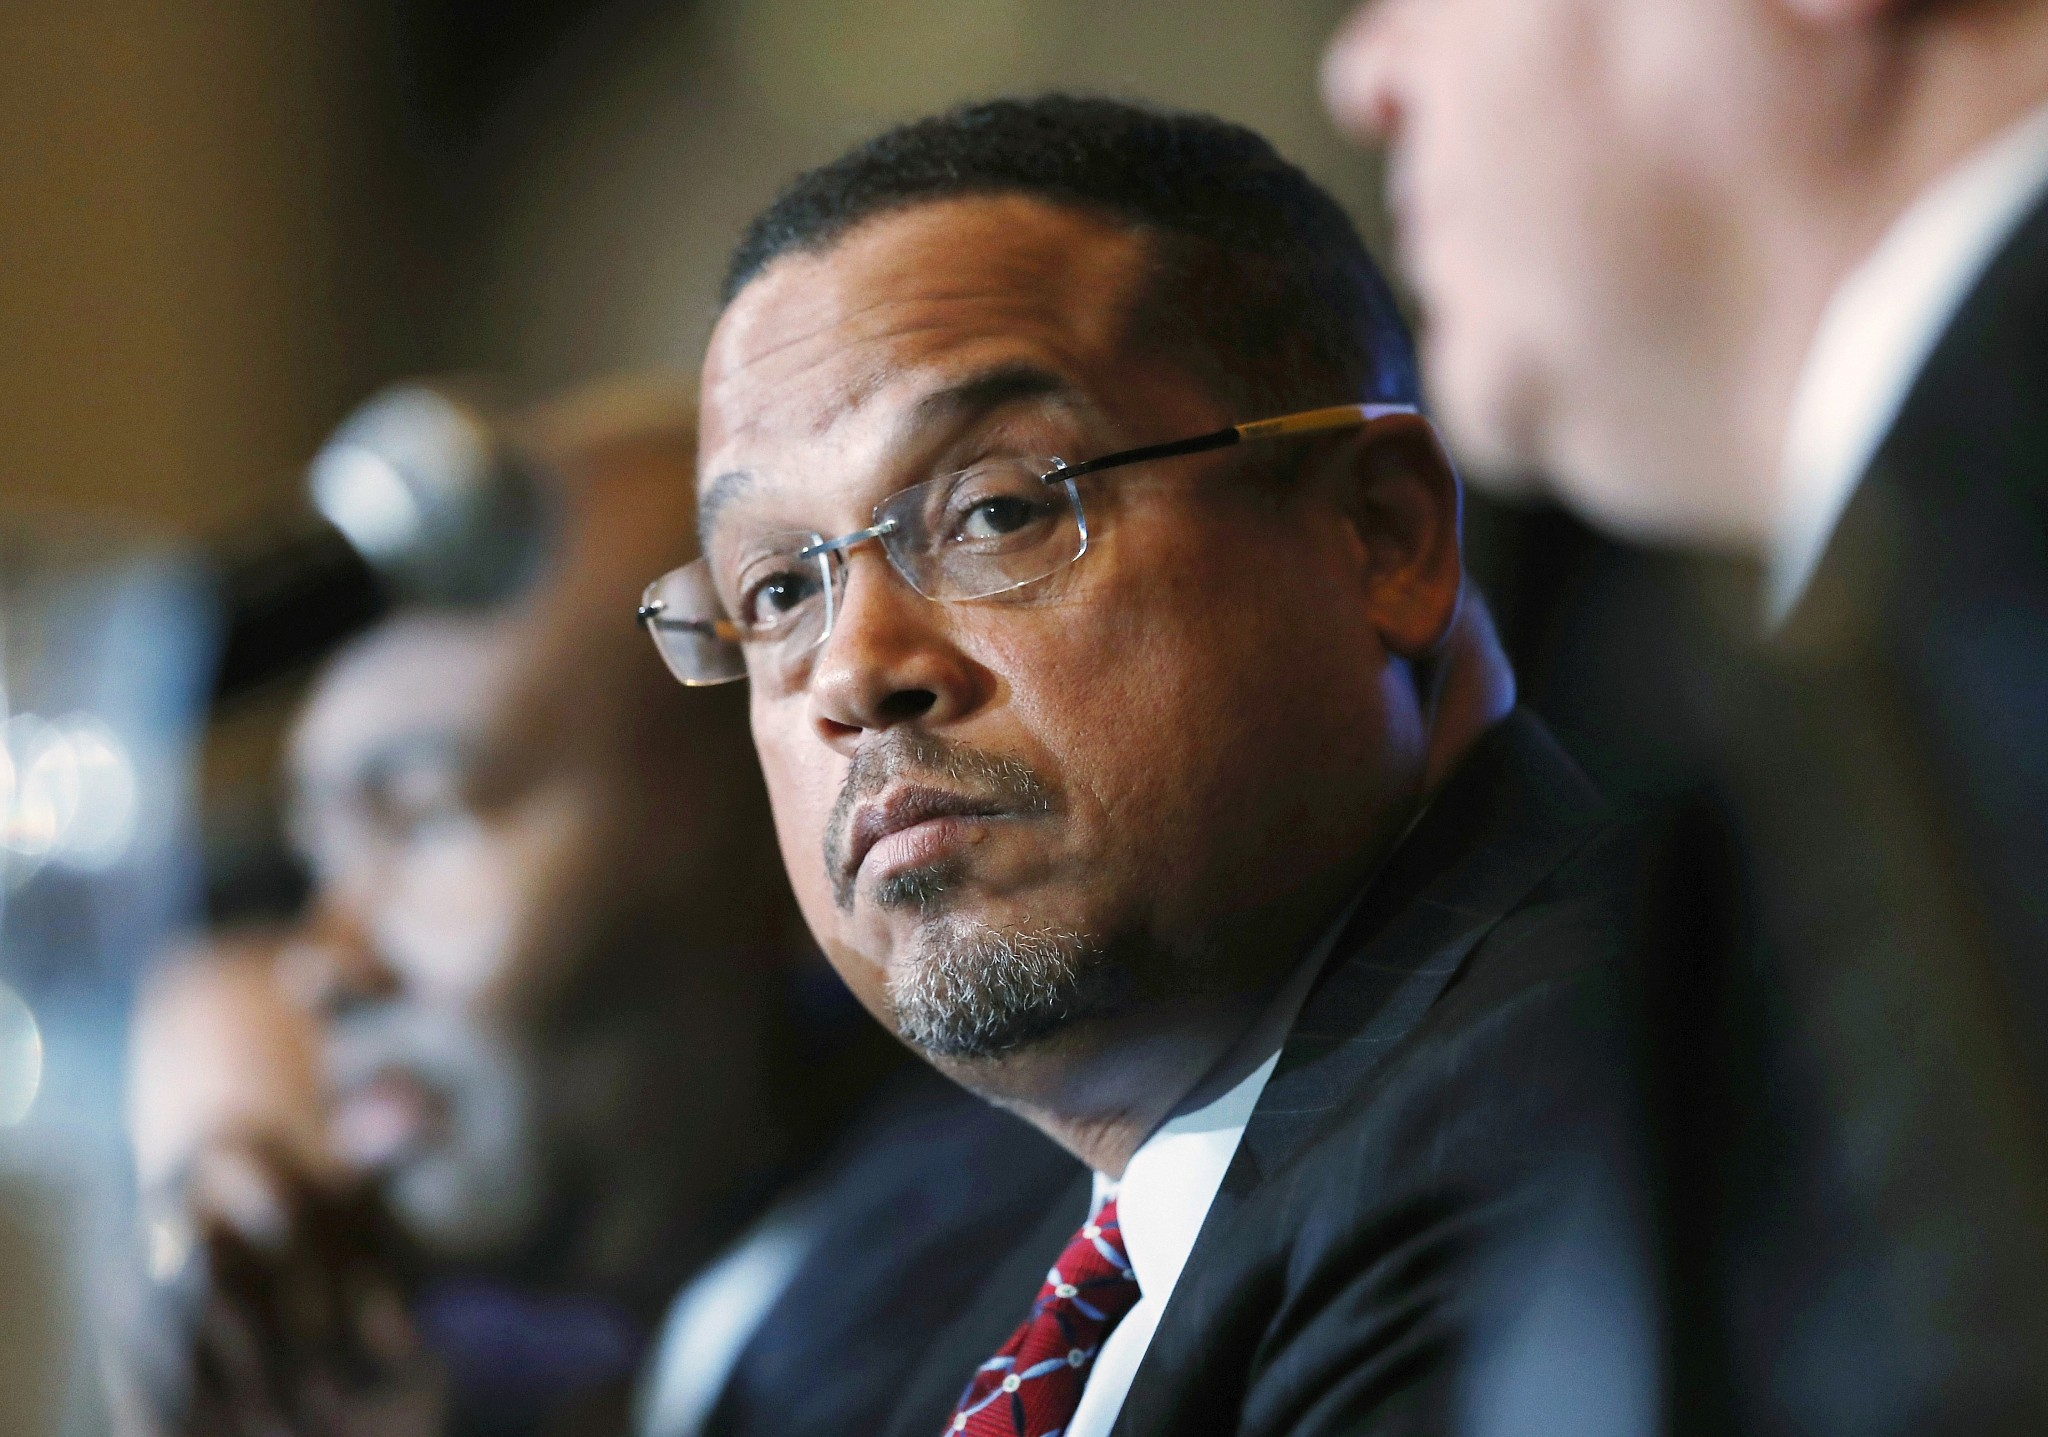 Keith Ellison says he met Rouhani to advocate for captive